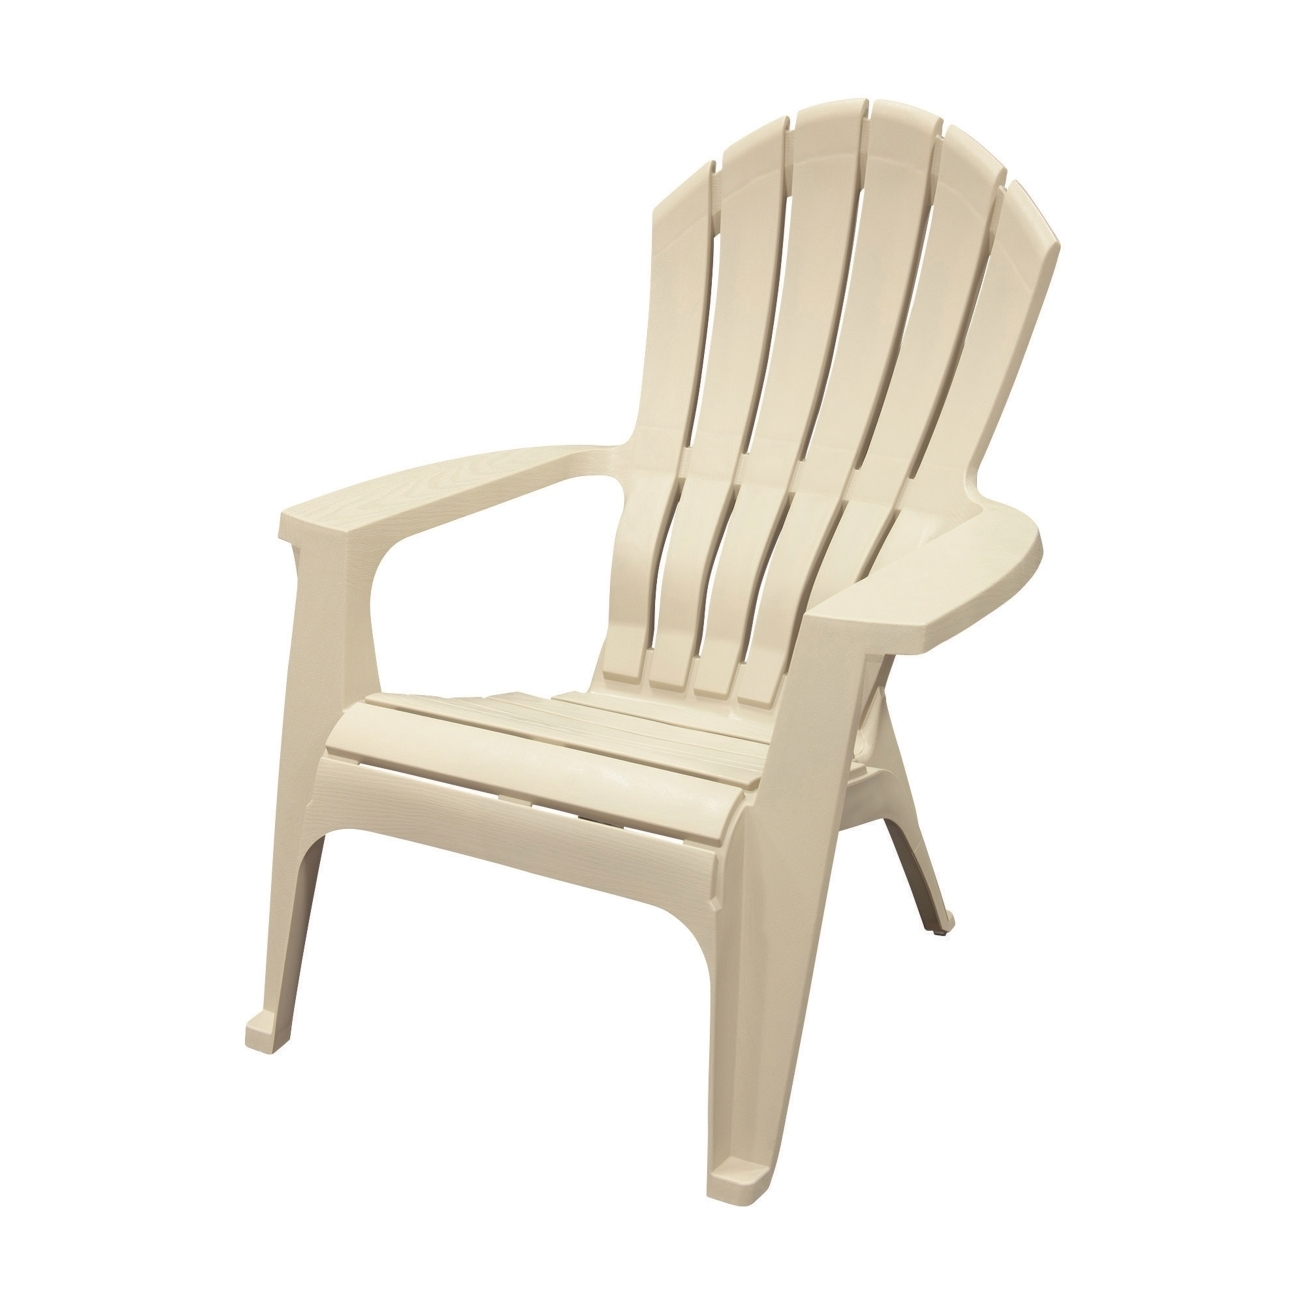 Rocking Chairs At Kroger With Regard To Most Recent Worthy Plastic Adirondack Chairs Kroger F83X On Simple Home Interior (View 11 of 15)